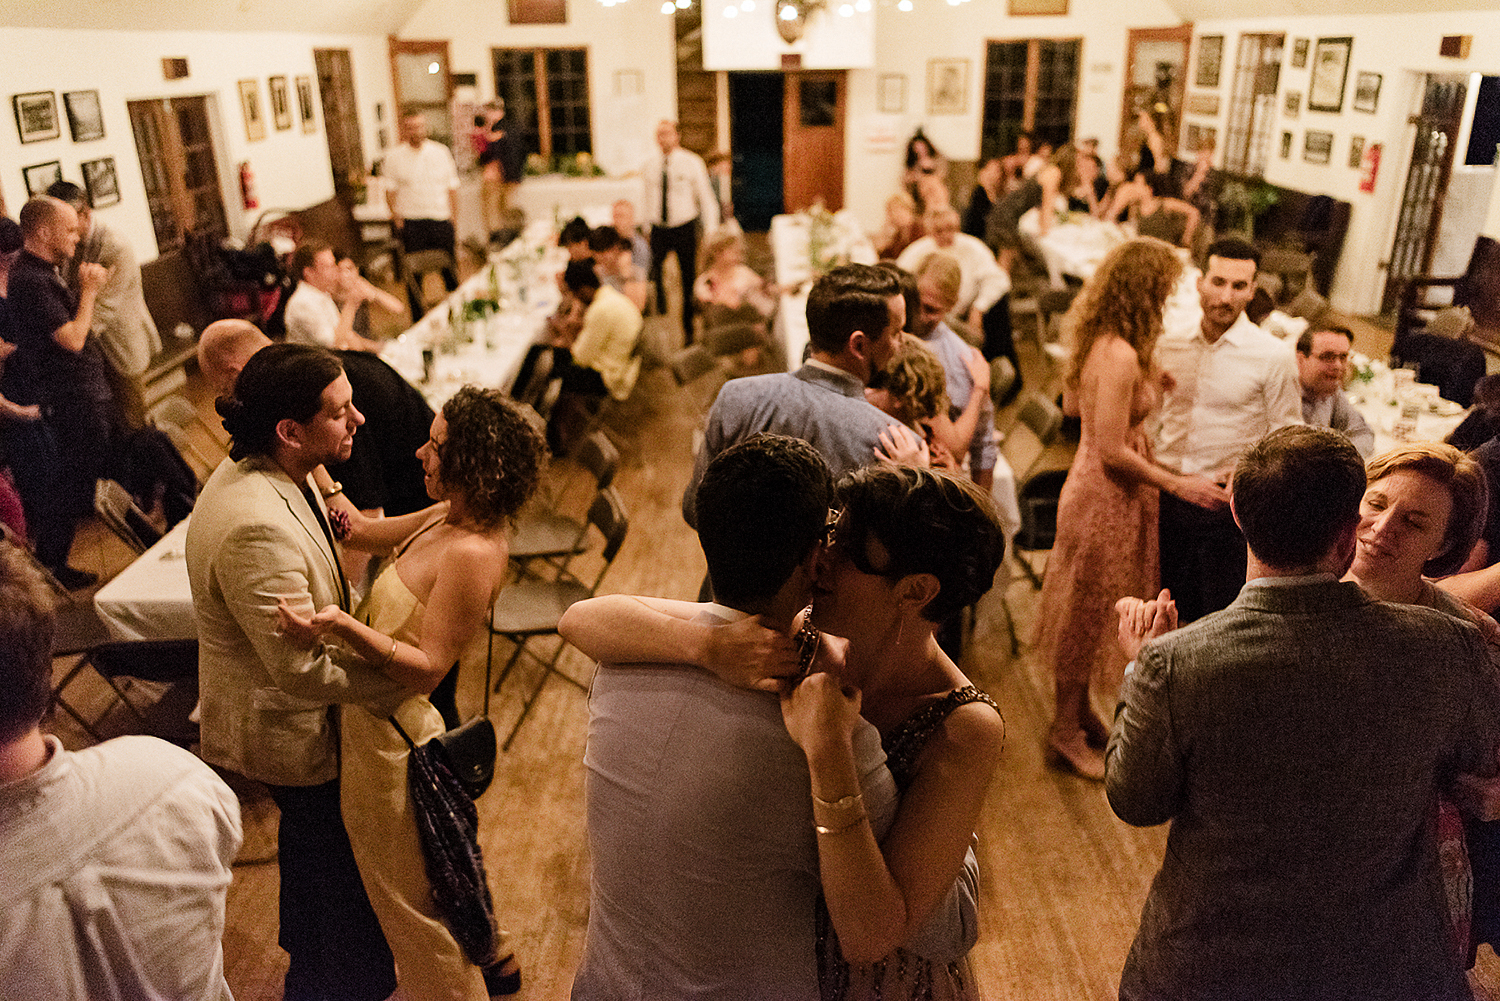 Best-Wedding-Photographers-in-Toronto-with-Photojournalistic-Documentary-Style-3B-Photography-Brian-Batista-Bettencourt-Intimate-Vintage-Wedding-at-Toronto-Island-Cafe-Clubhouse-Sunset-portraits-quiet-moment-first-dance.jpg